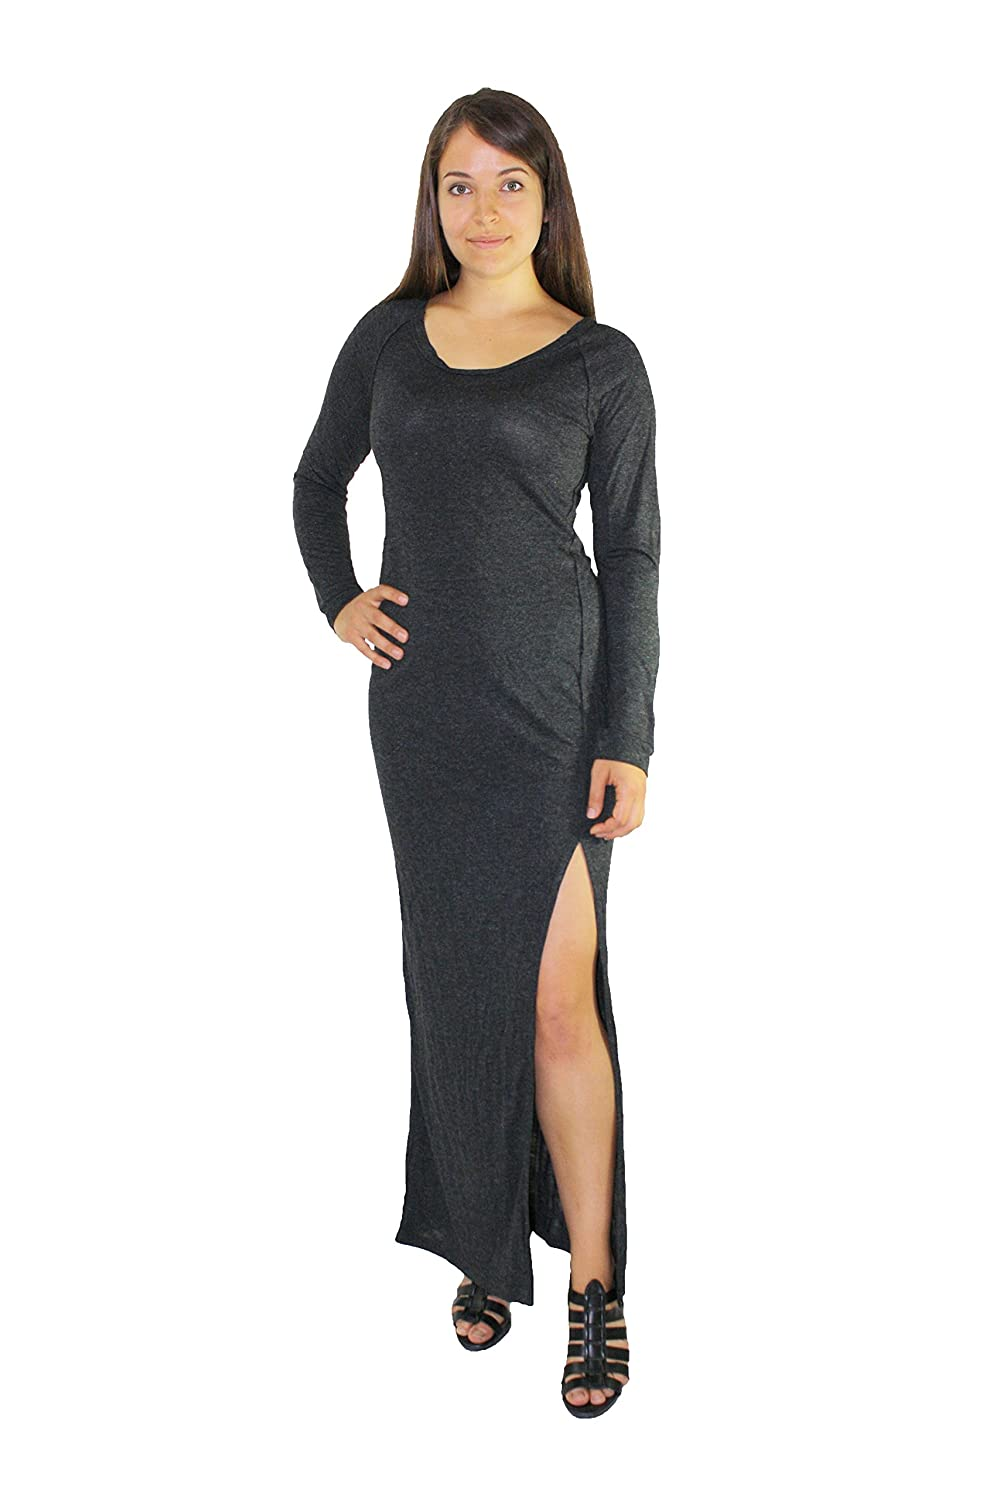 Women's Diesel Cotton Marl Maxi Dress with Back Cut-outs and Side Slit